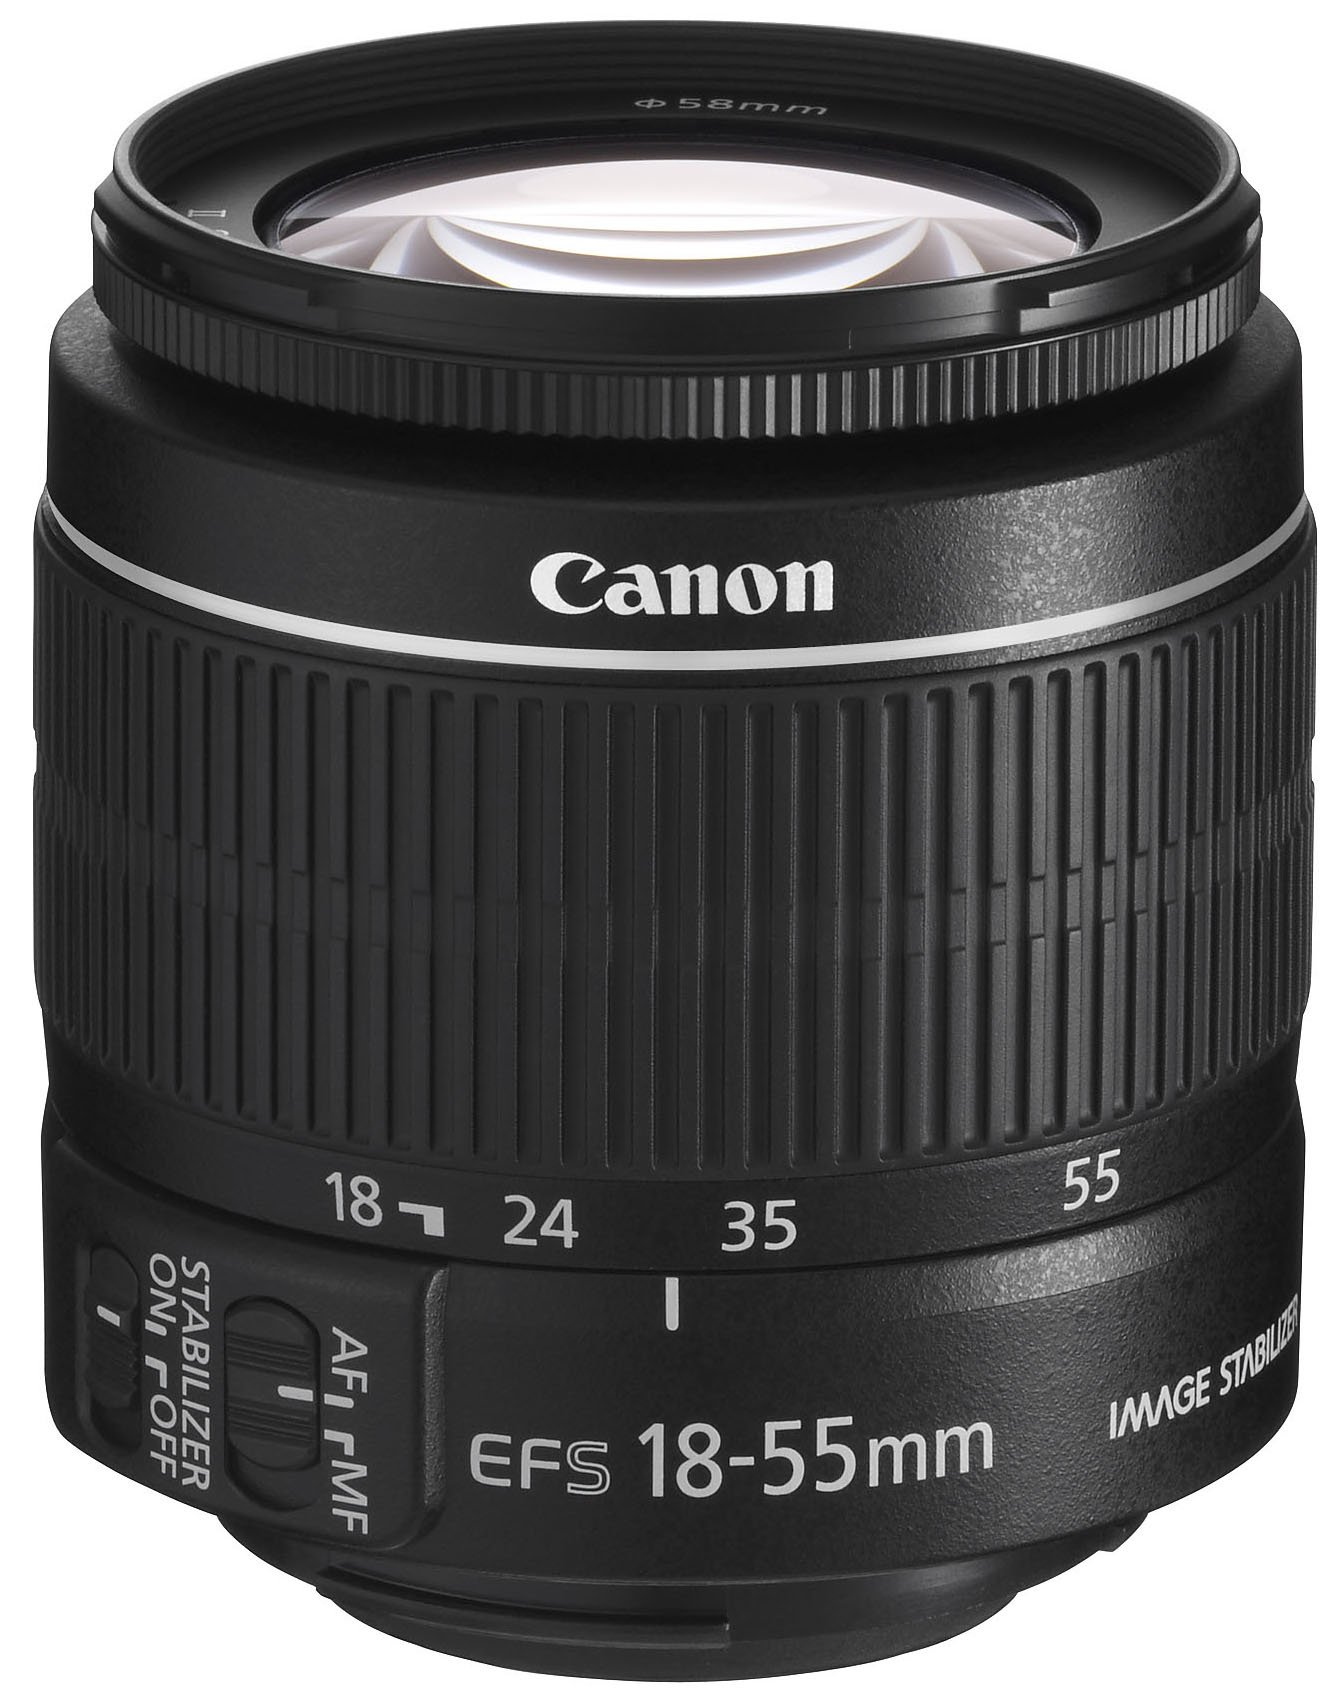 Canon EF-S 18-55mm f/3.5-5.6 IS II SLR Lens - Mark II (White Box) by Canon